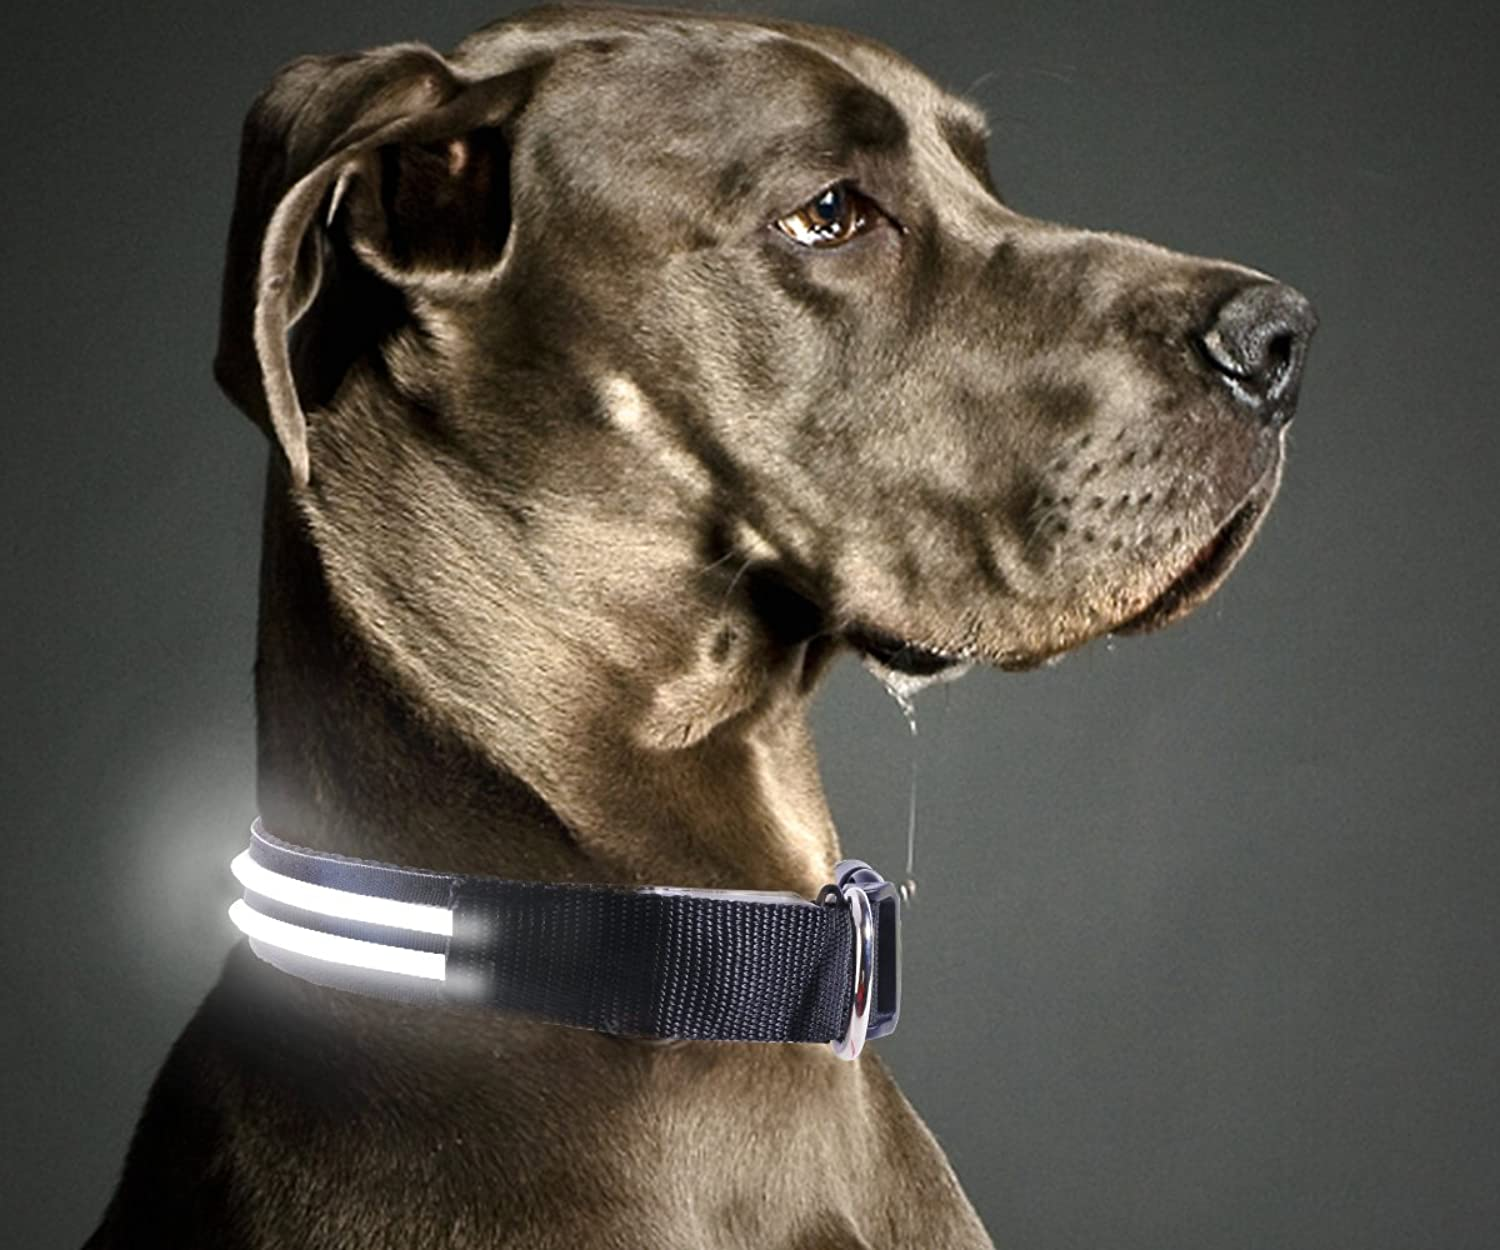 Hot pet Dual Line Safety LED Dog Collar  USB Rechargeable with Water Resistant Flashing Light  Vailable in 7 colors & 3 Sizes (Medium [1519  4050 cm], Black)